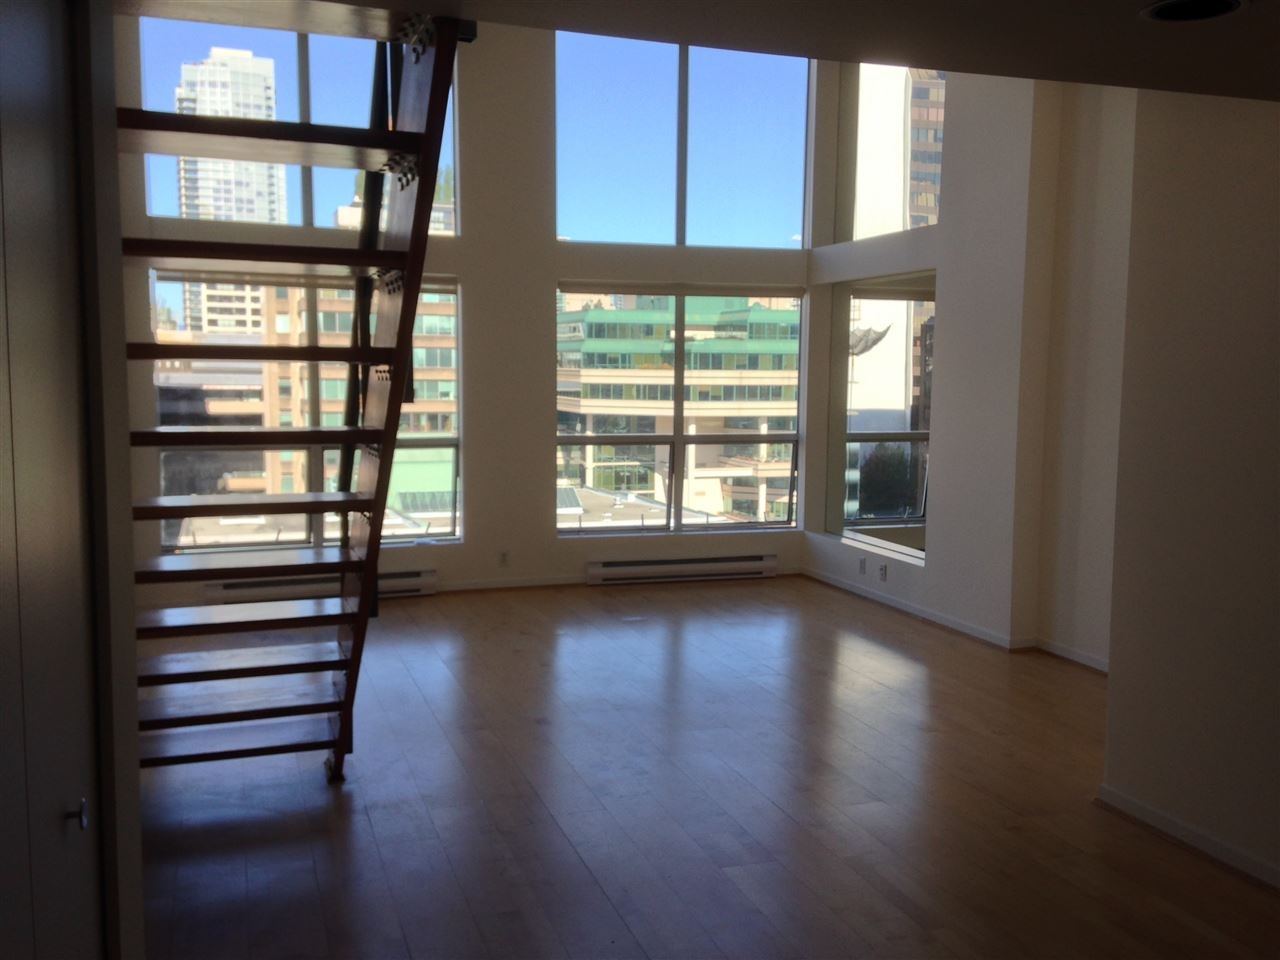 Photo 2: 803 933 SEYMOUR STREET in Vancouver: Downtown VW Condo for sale (Vancouver West)  : MLS® # R2078140